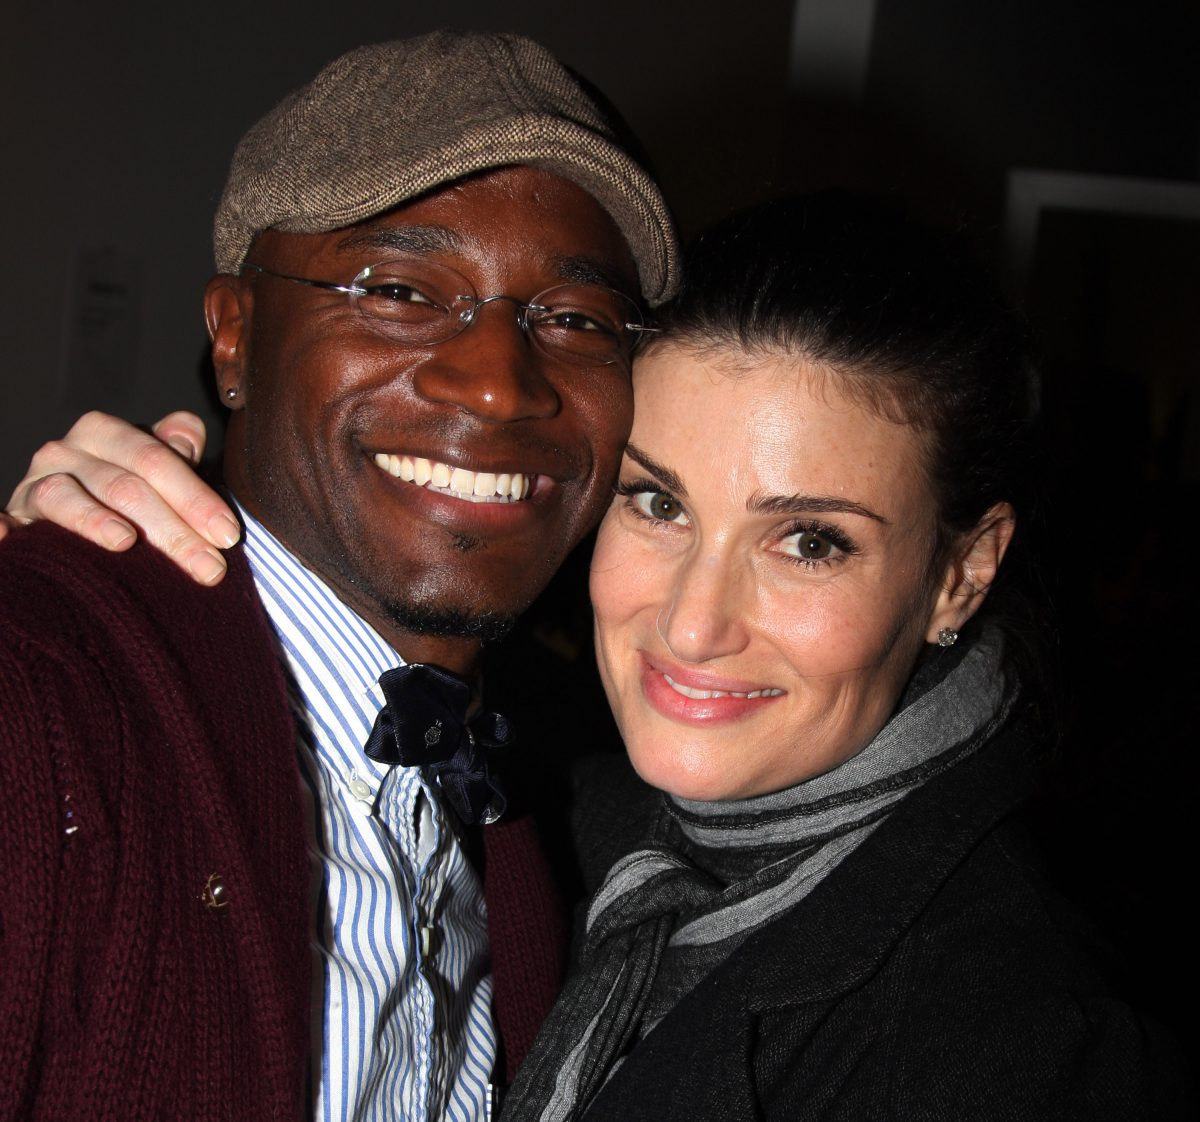 Taye Diggs and Idina Menzel pose during the opening night party for the world premiere of 'Minsky's' held at Ahmanson Theatre on February 6, 2009 in Los Angeles, California.